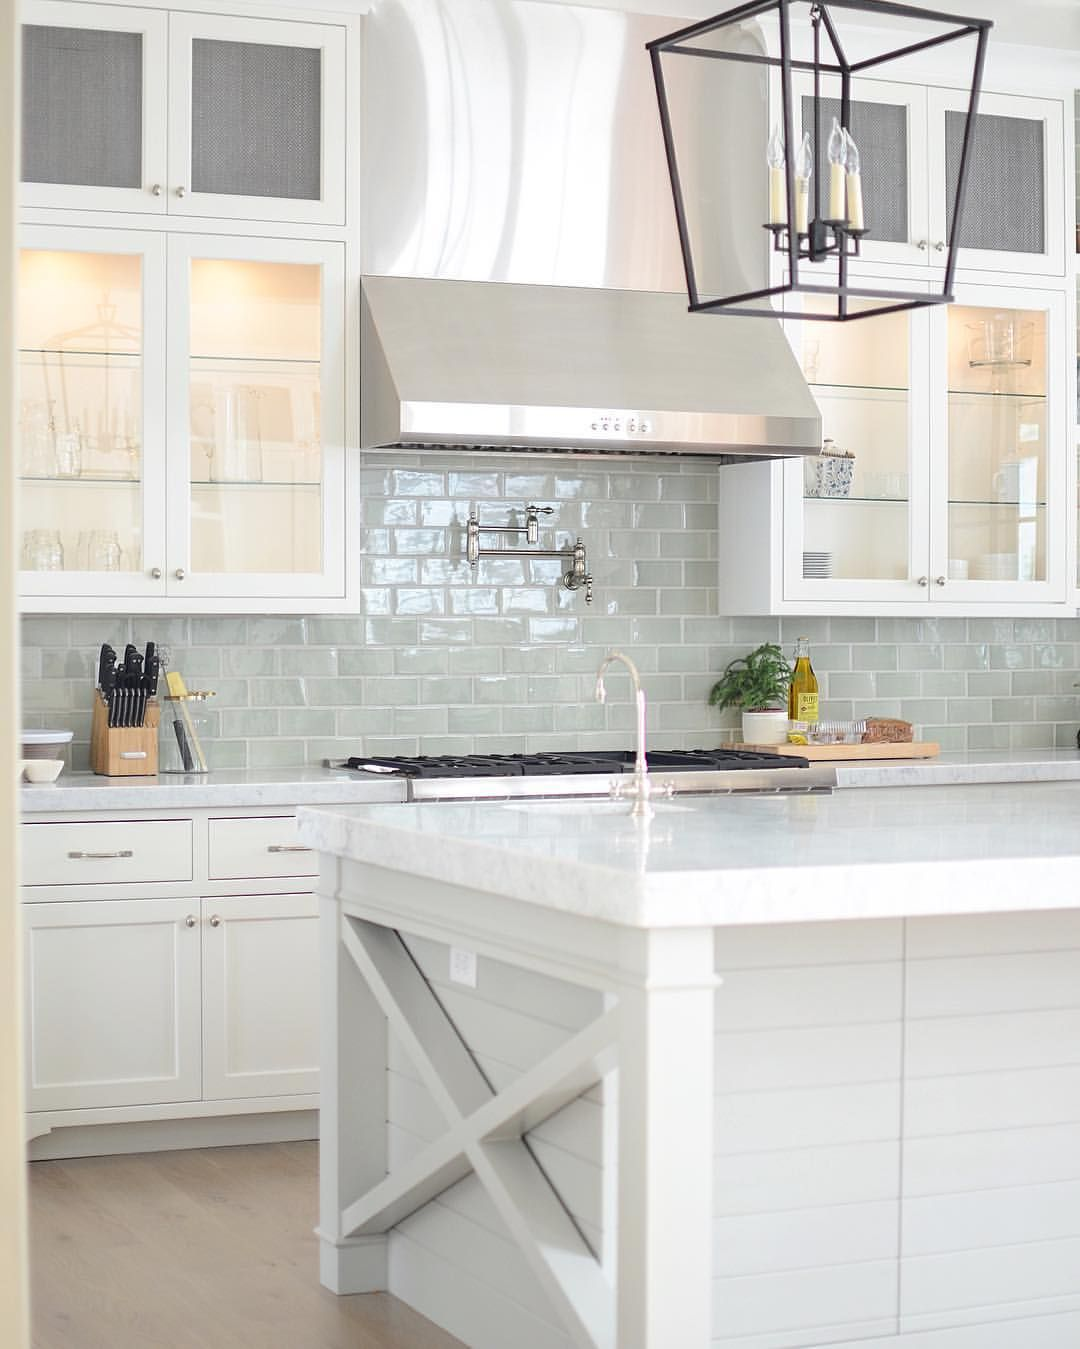 Bright white kitchen with pale blue subway tile backsplash | Kitchen ...